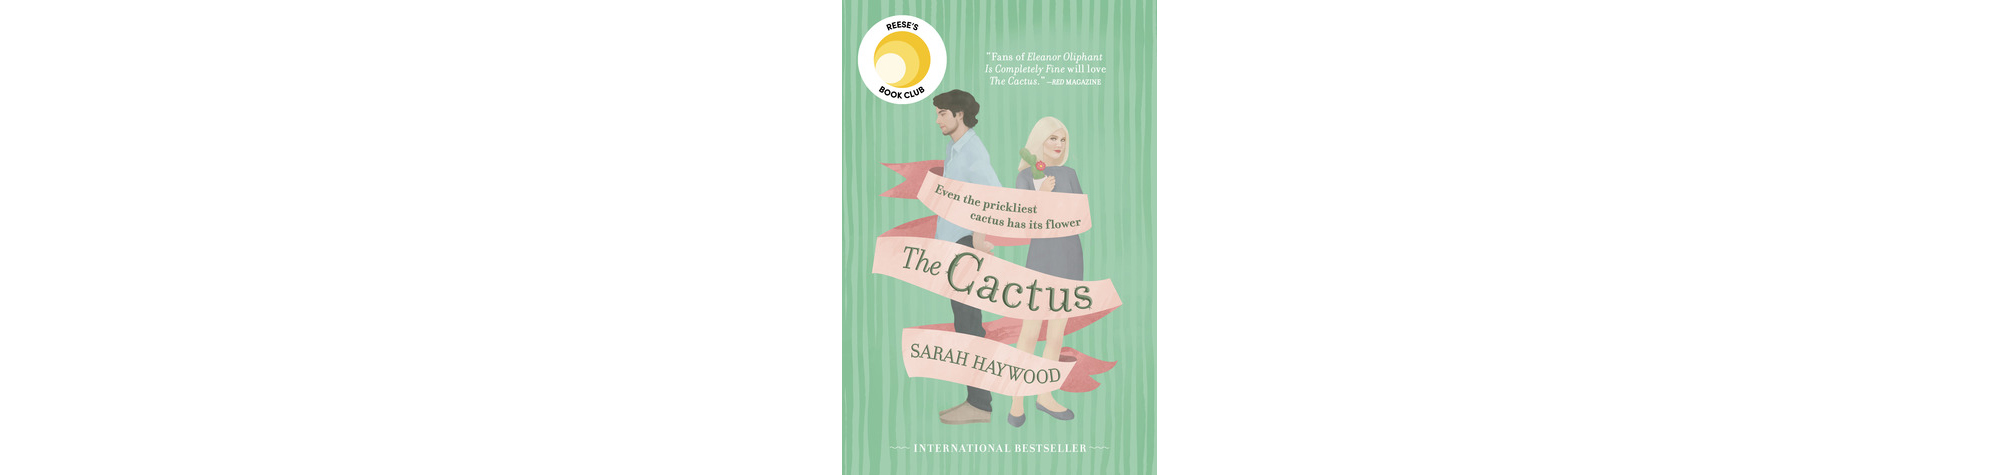 Cover of The Cactus, by Sarah Haywood